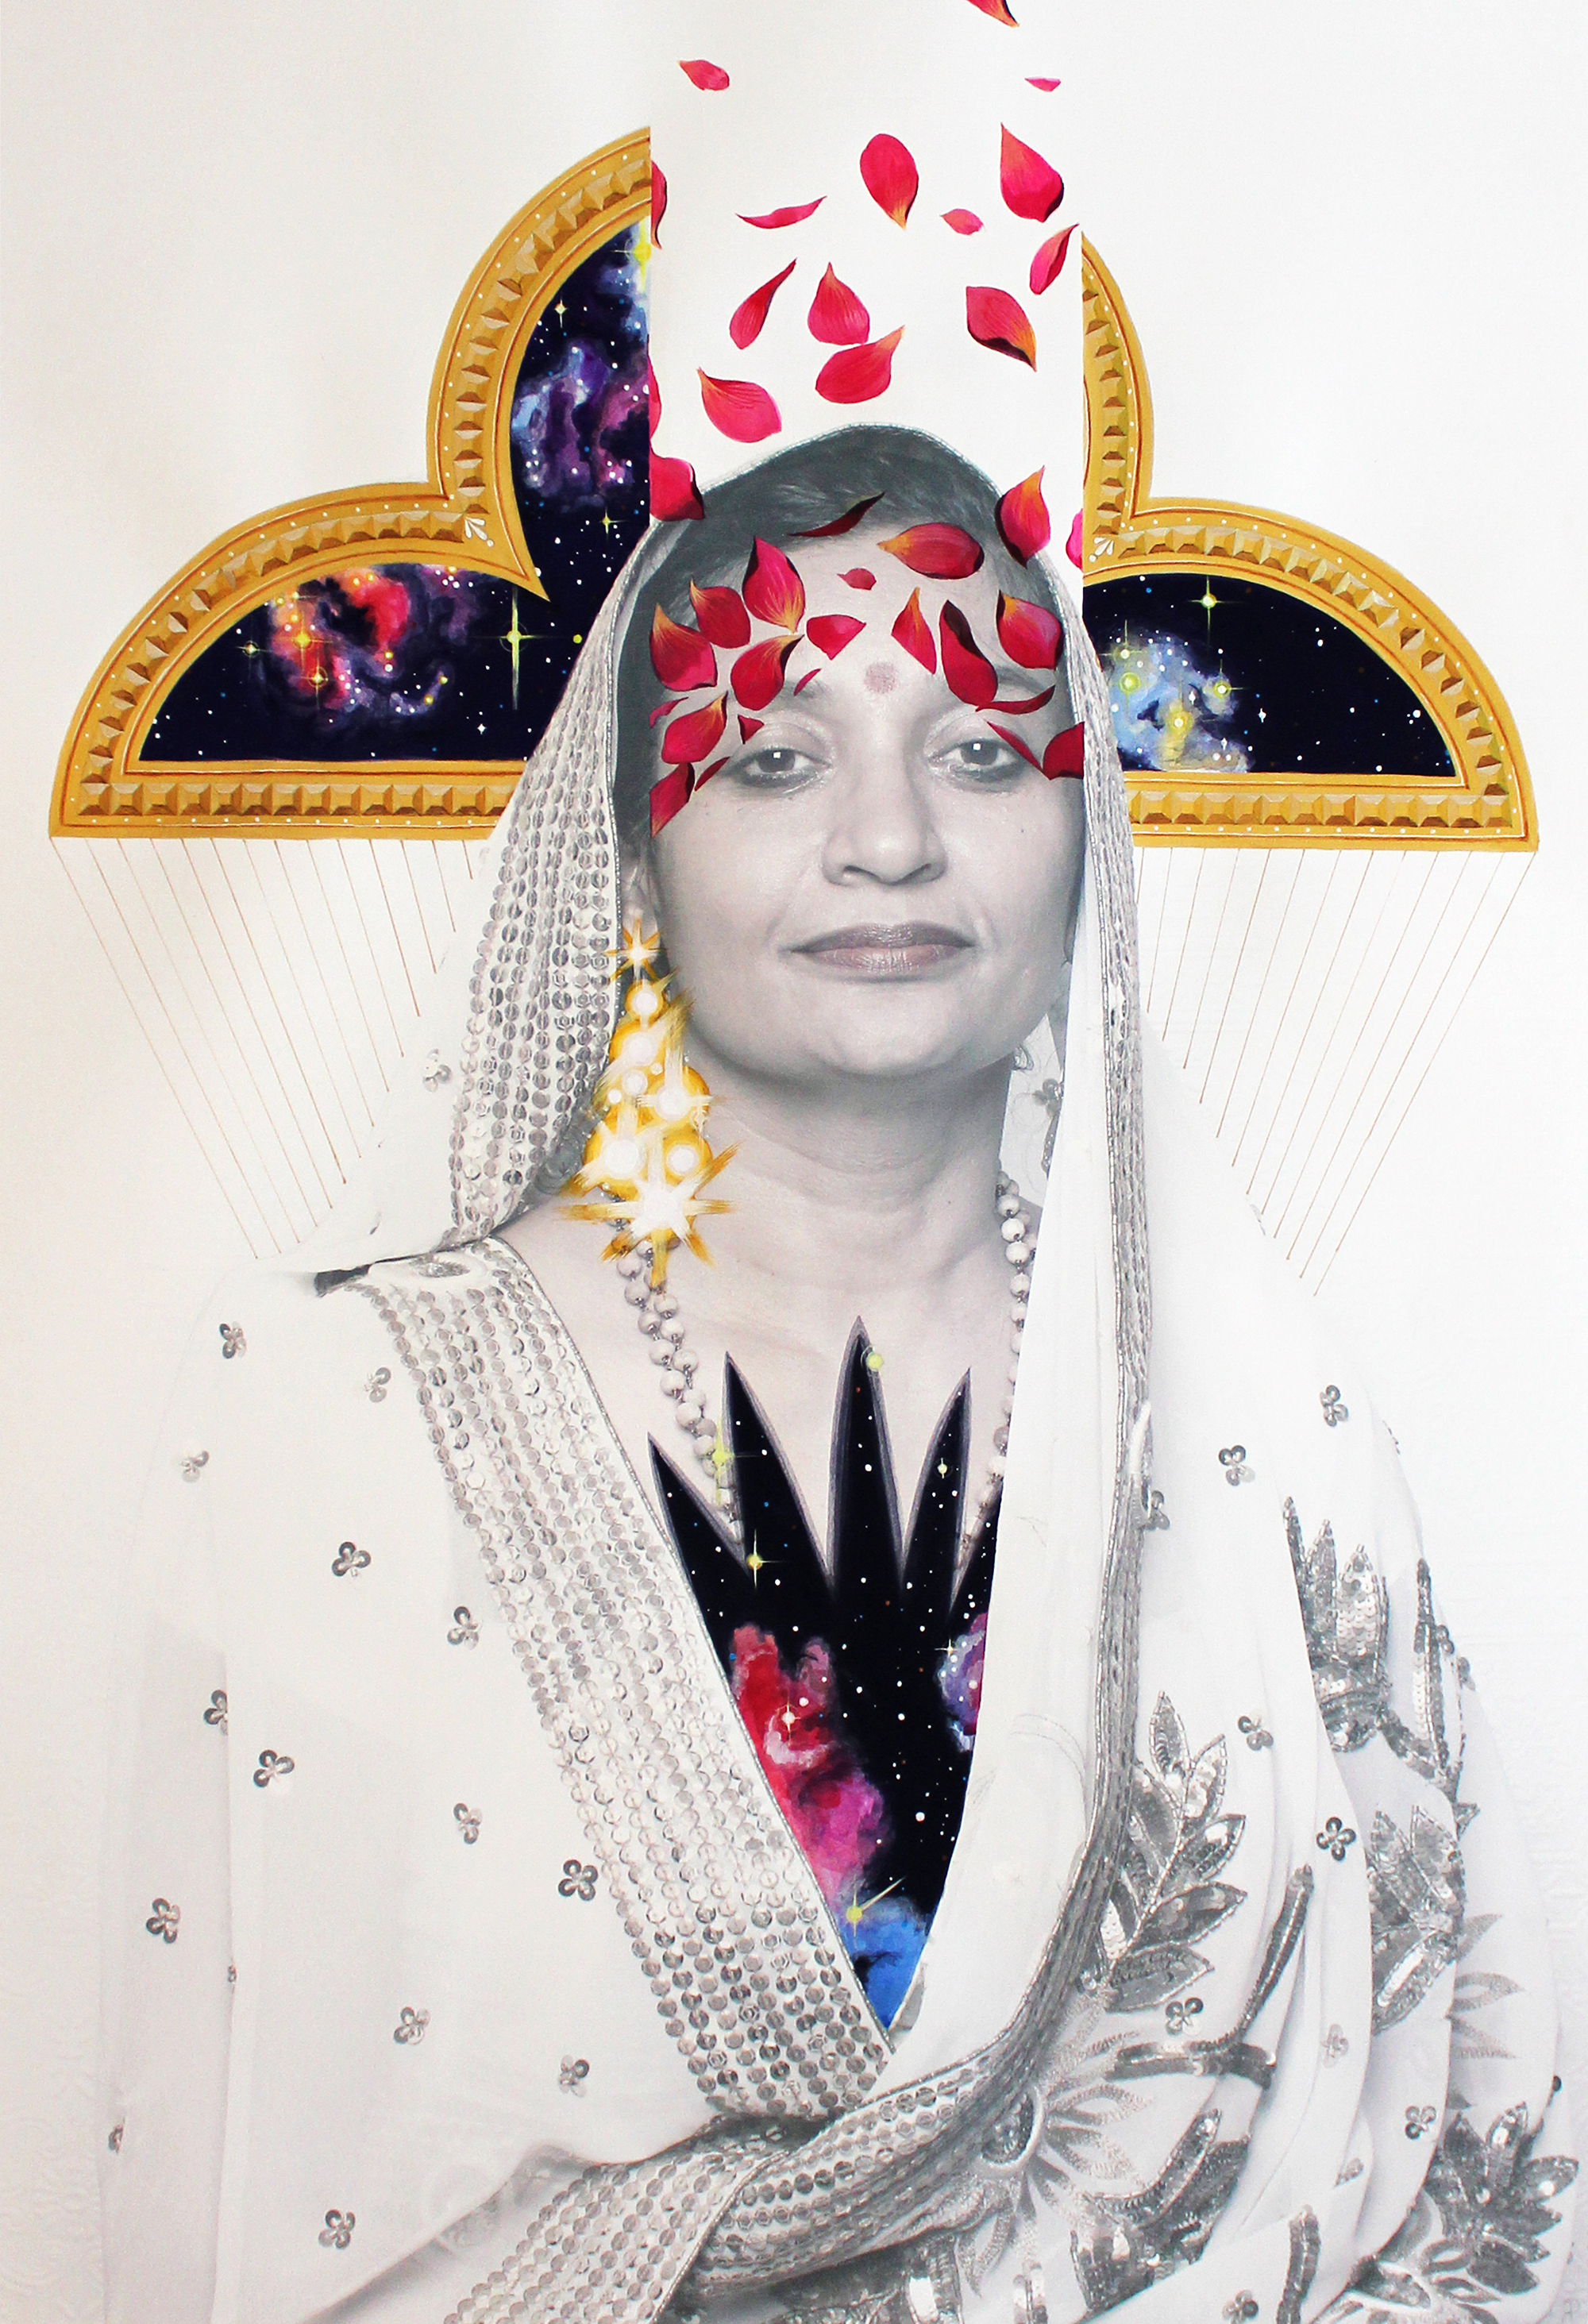 Sharmini  - mm on paper (2014)